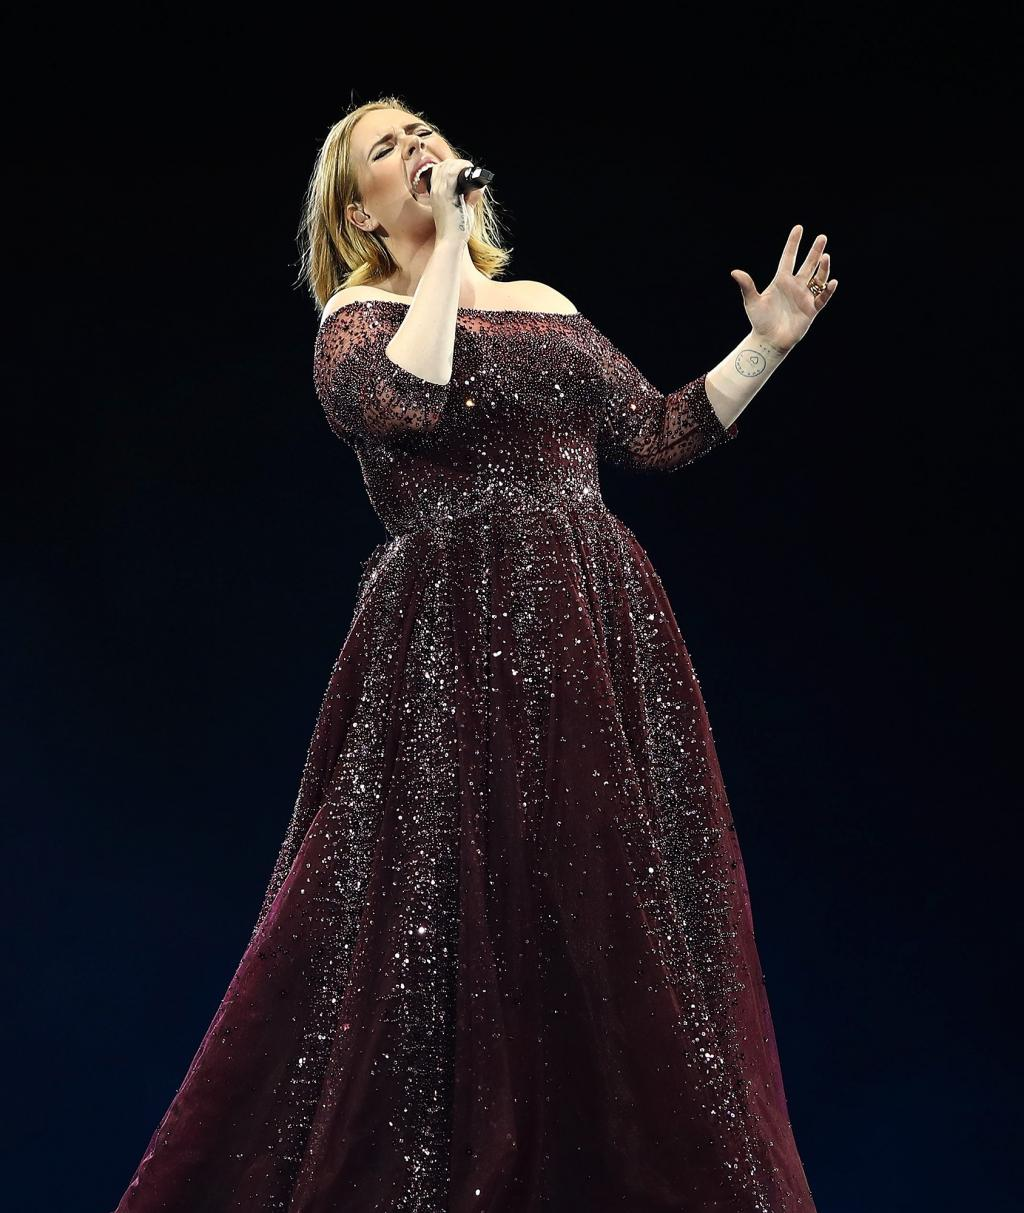 Adele Dedicates 'Make You Feel My Love' to London Terror Attack Victims at Auckland Concert